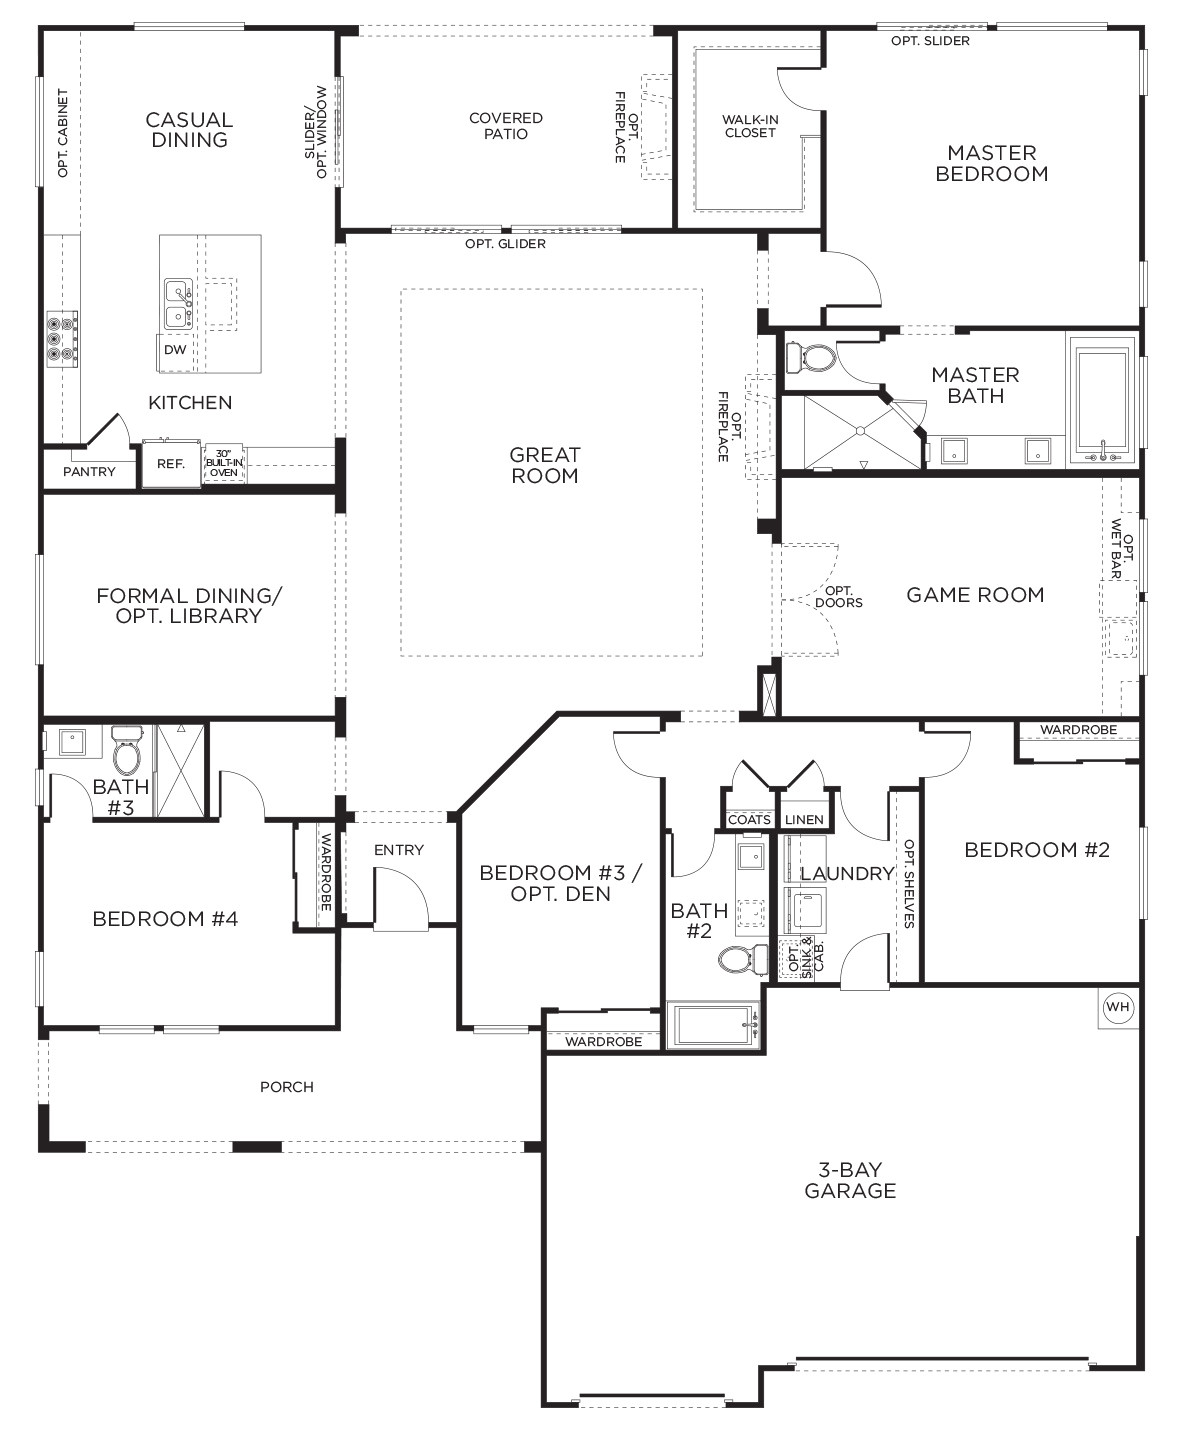 love this layout with extra rooms single story floor plans one story house plans pardee homes a lot of potential